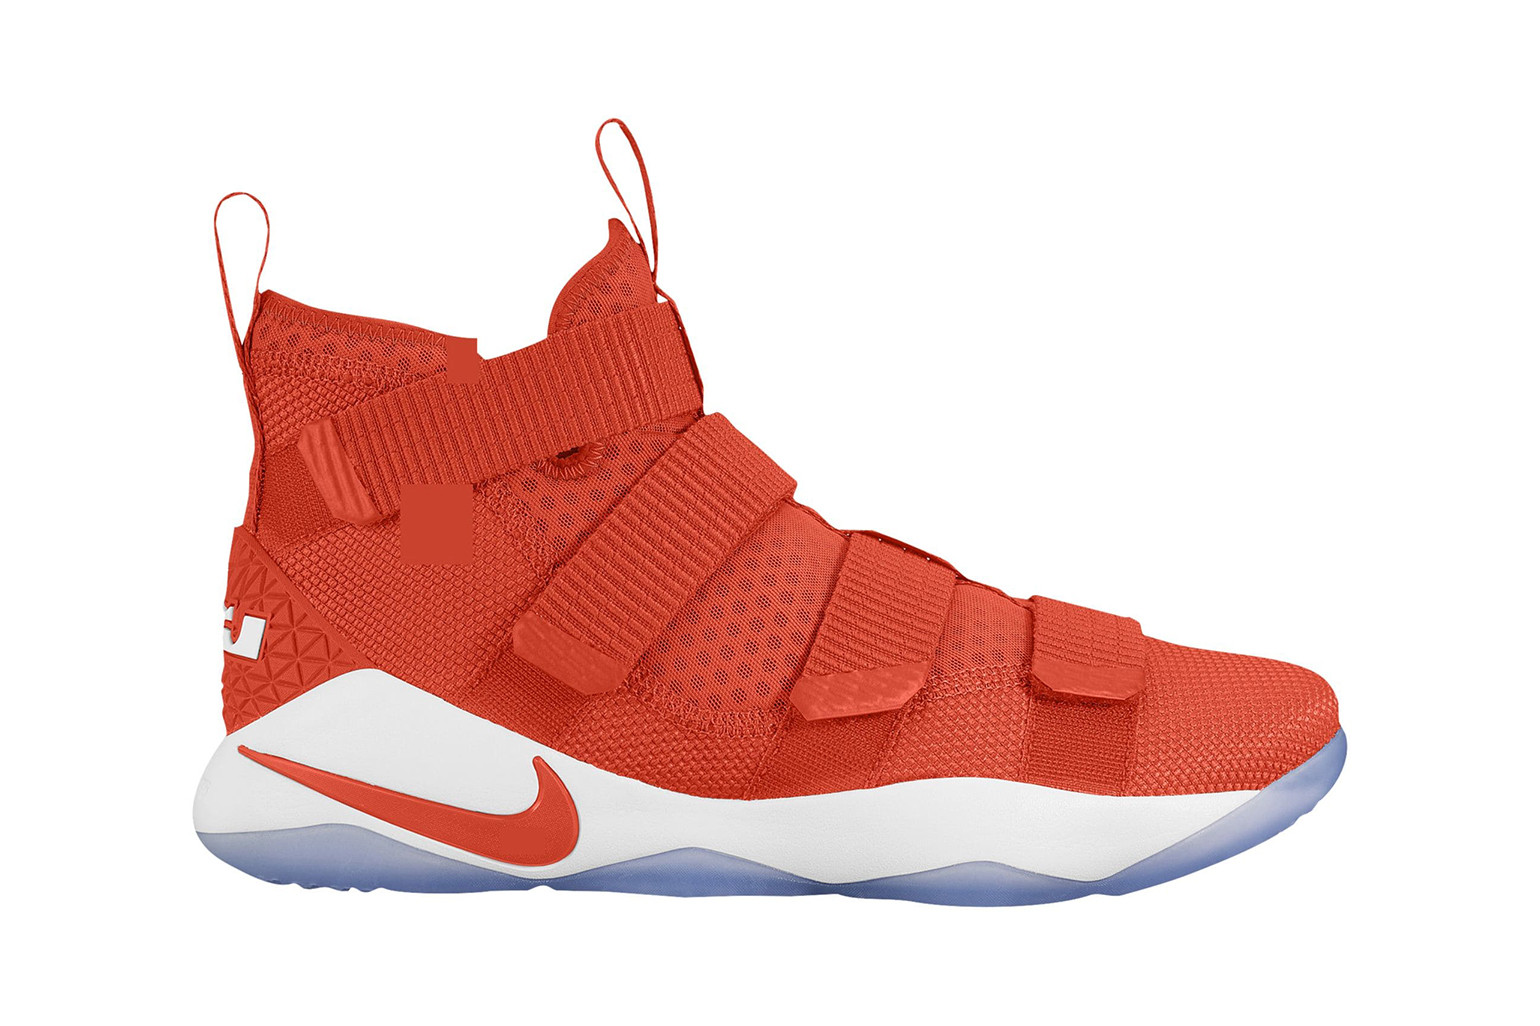 Colorways of the LeBron Soldier 11